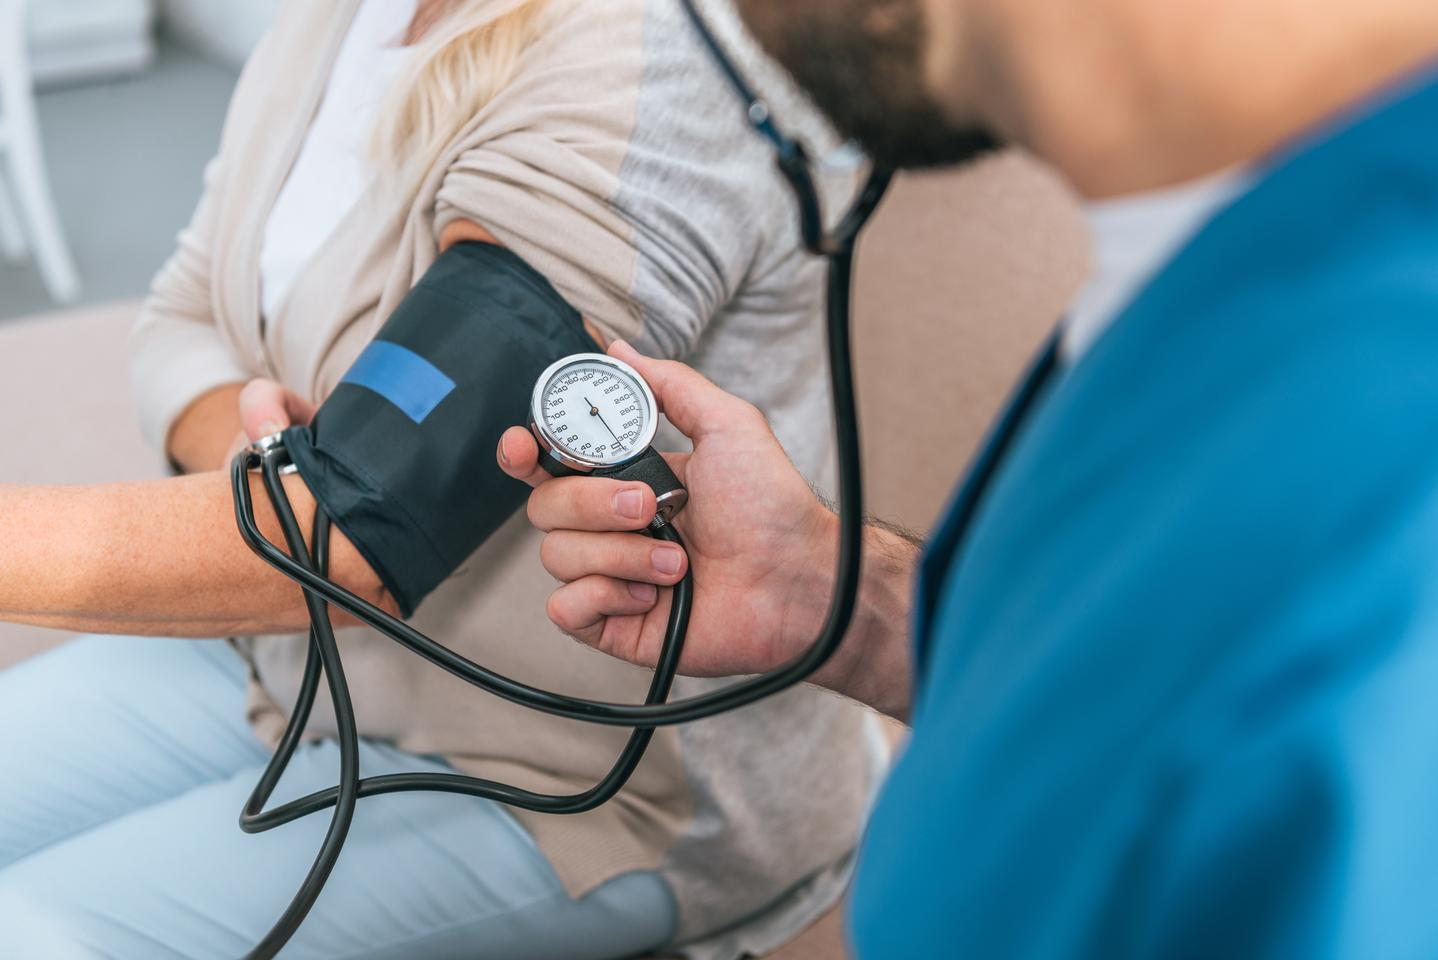 An expansive new study has highlighted the connection between blood pressure differential between arms and heightened risk of heart attack and stroke